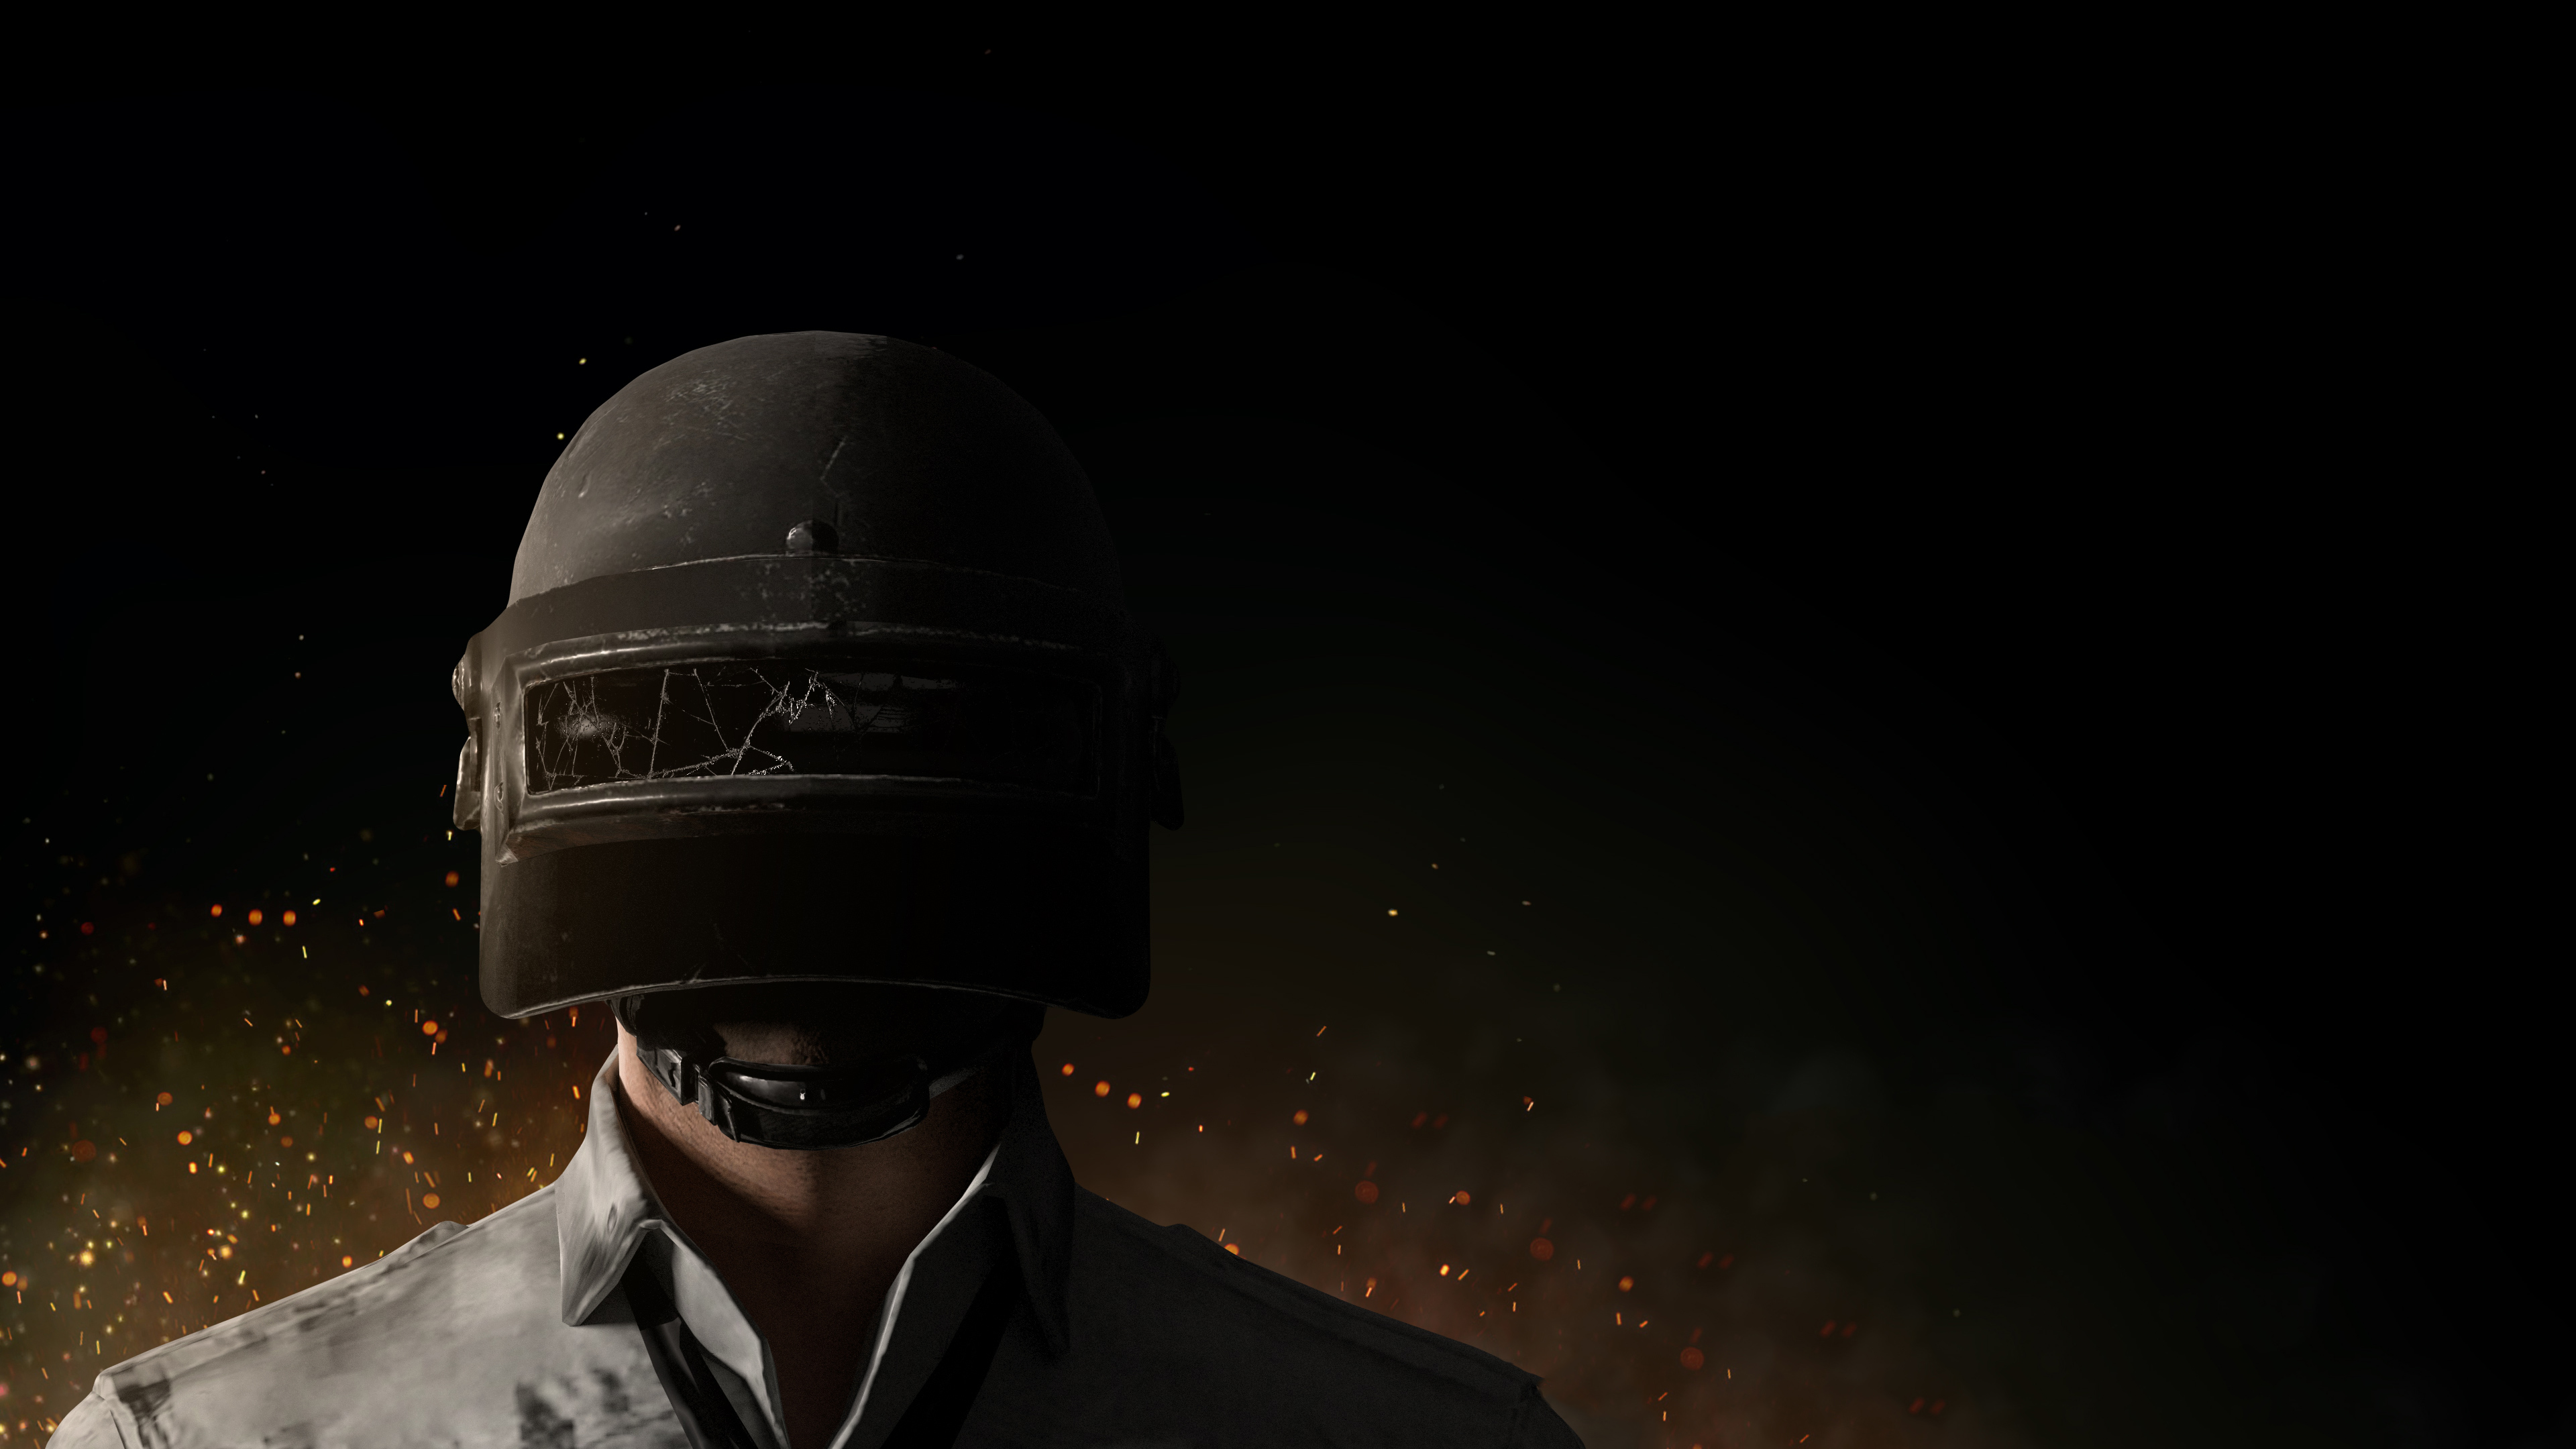 Pubg Helmet Guy 4k Pubg Wallpapers Playerunknowns